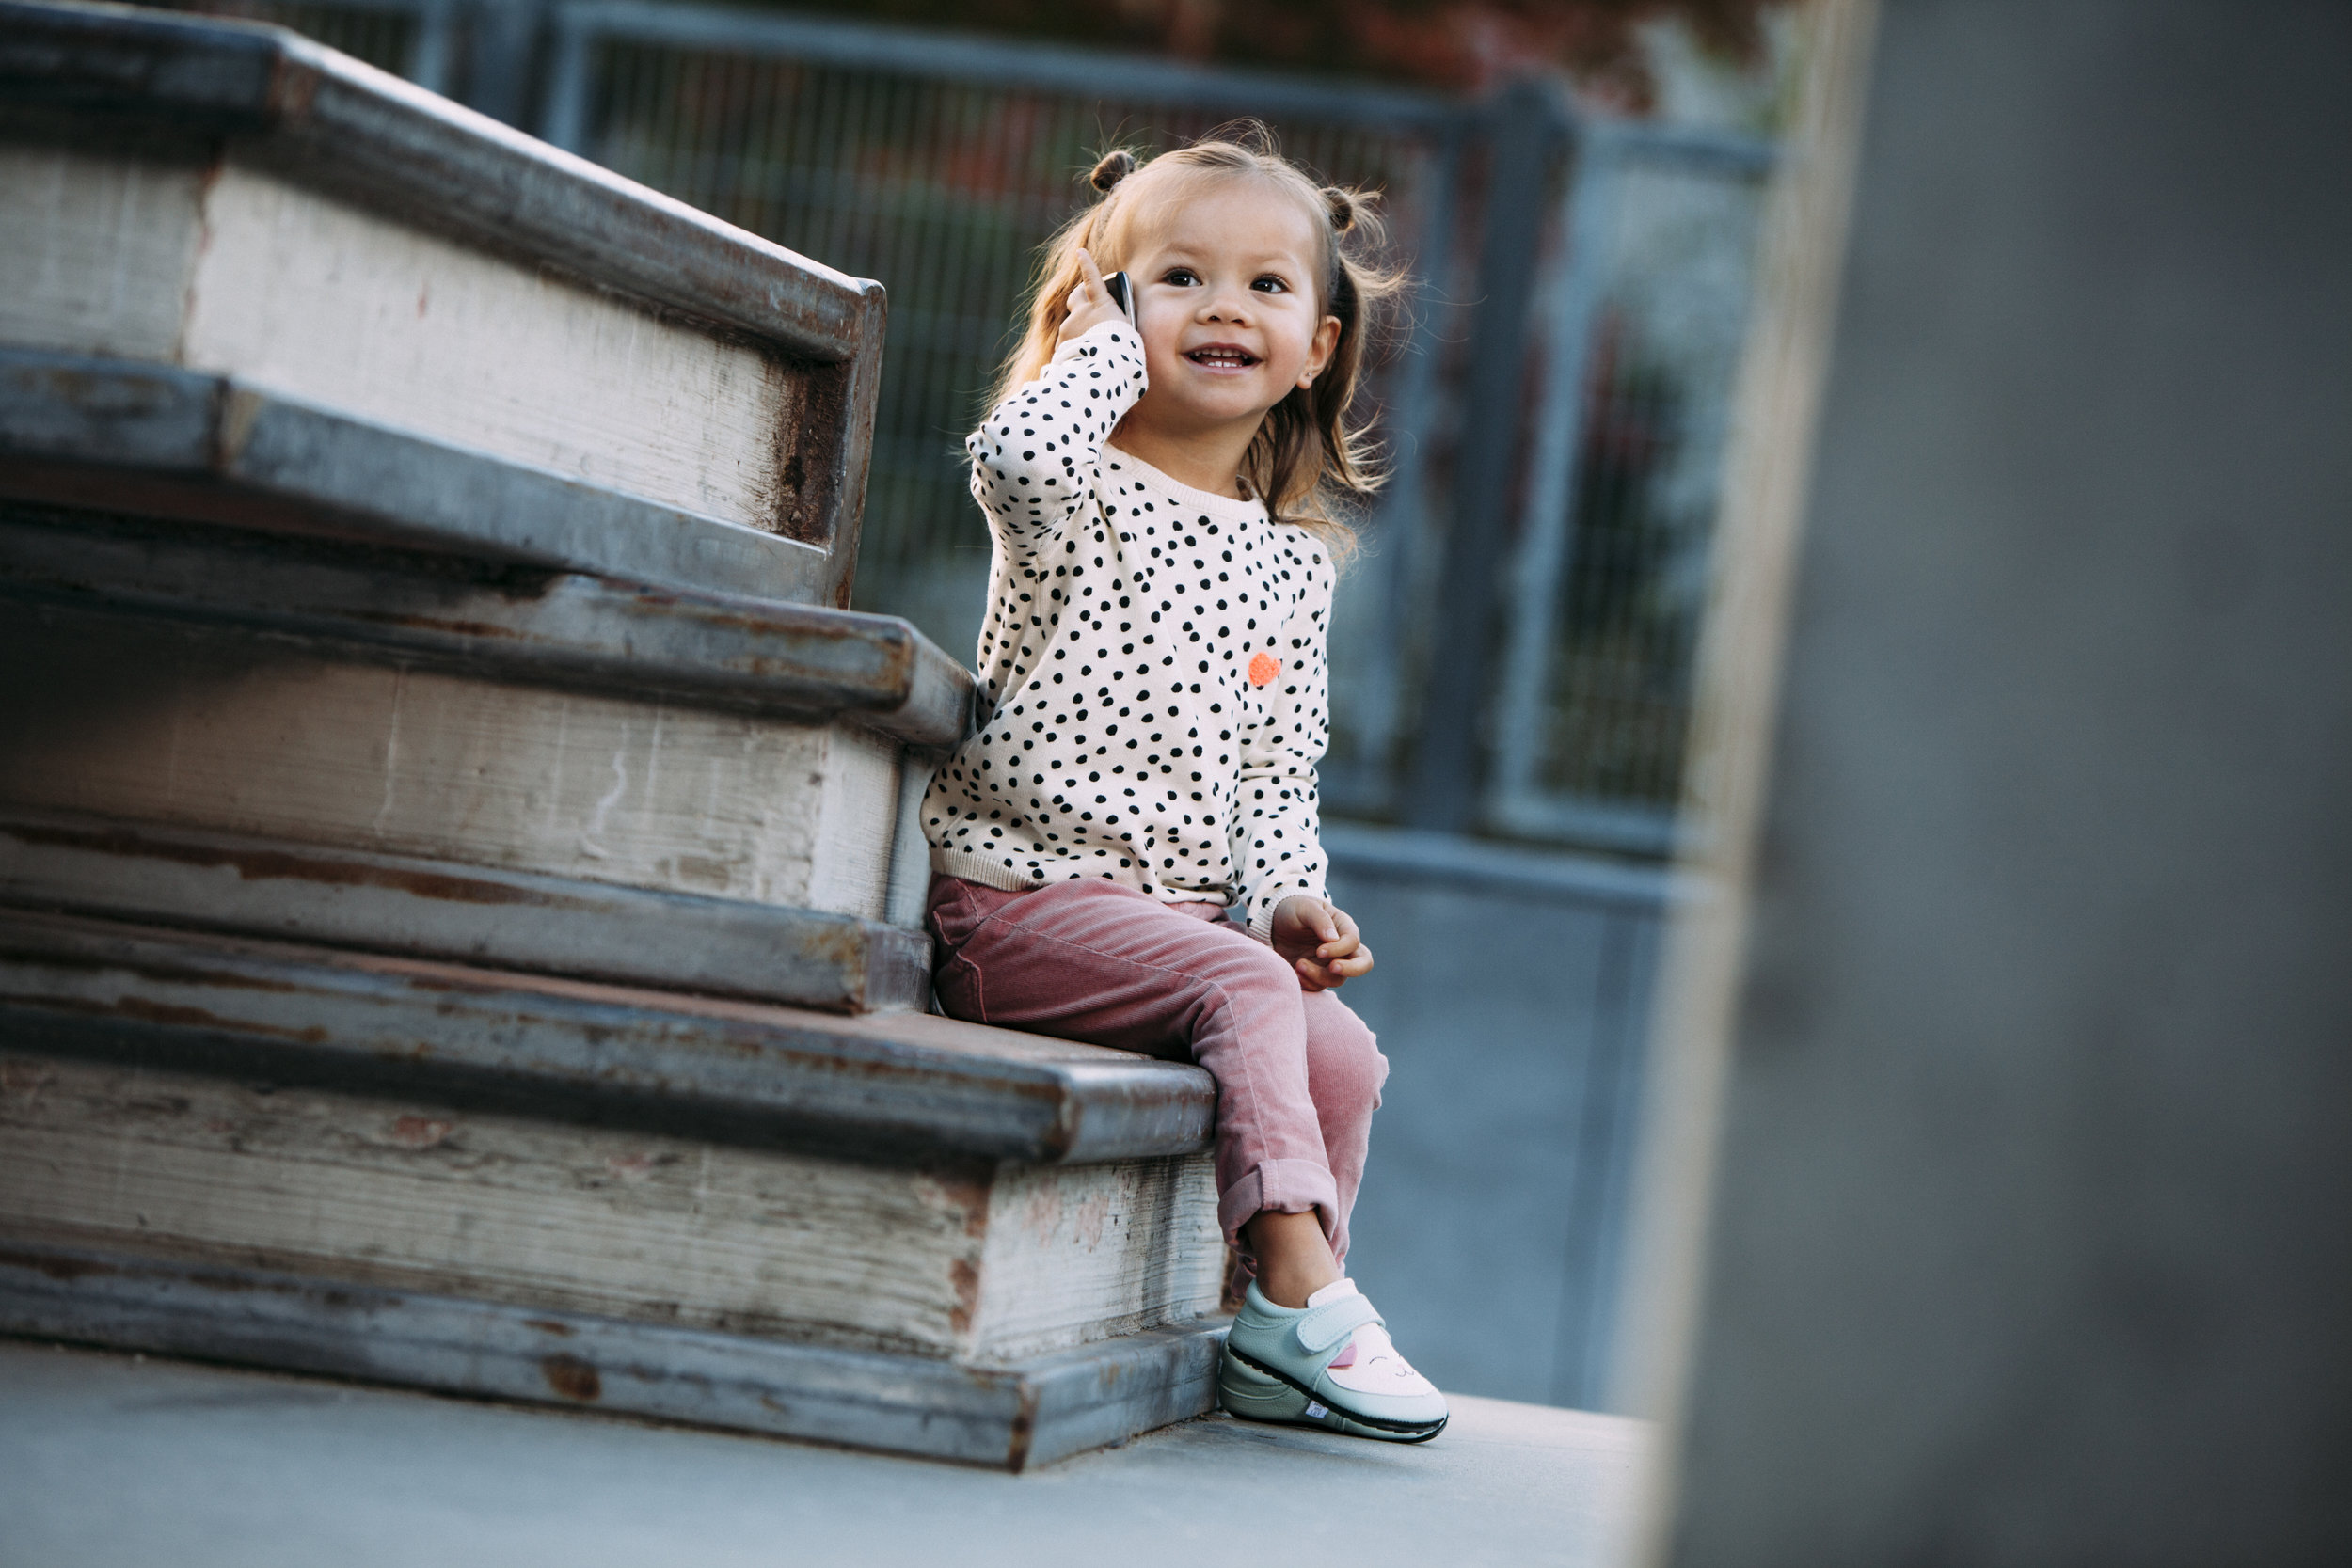 Iola being on trend with her  Jack & Lily Mocs - Keiko